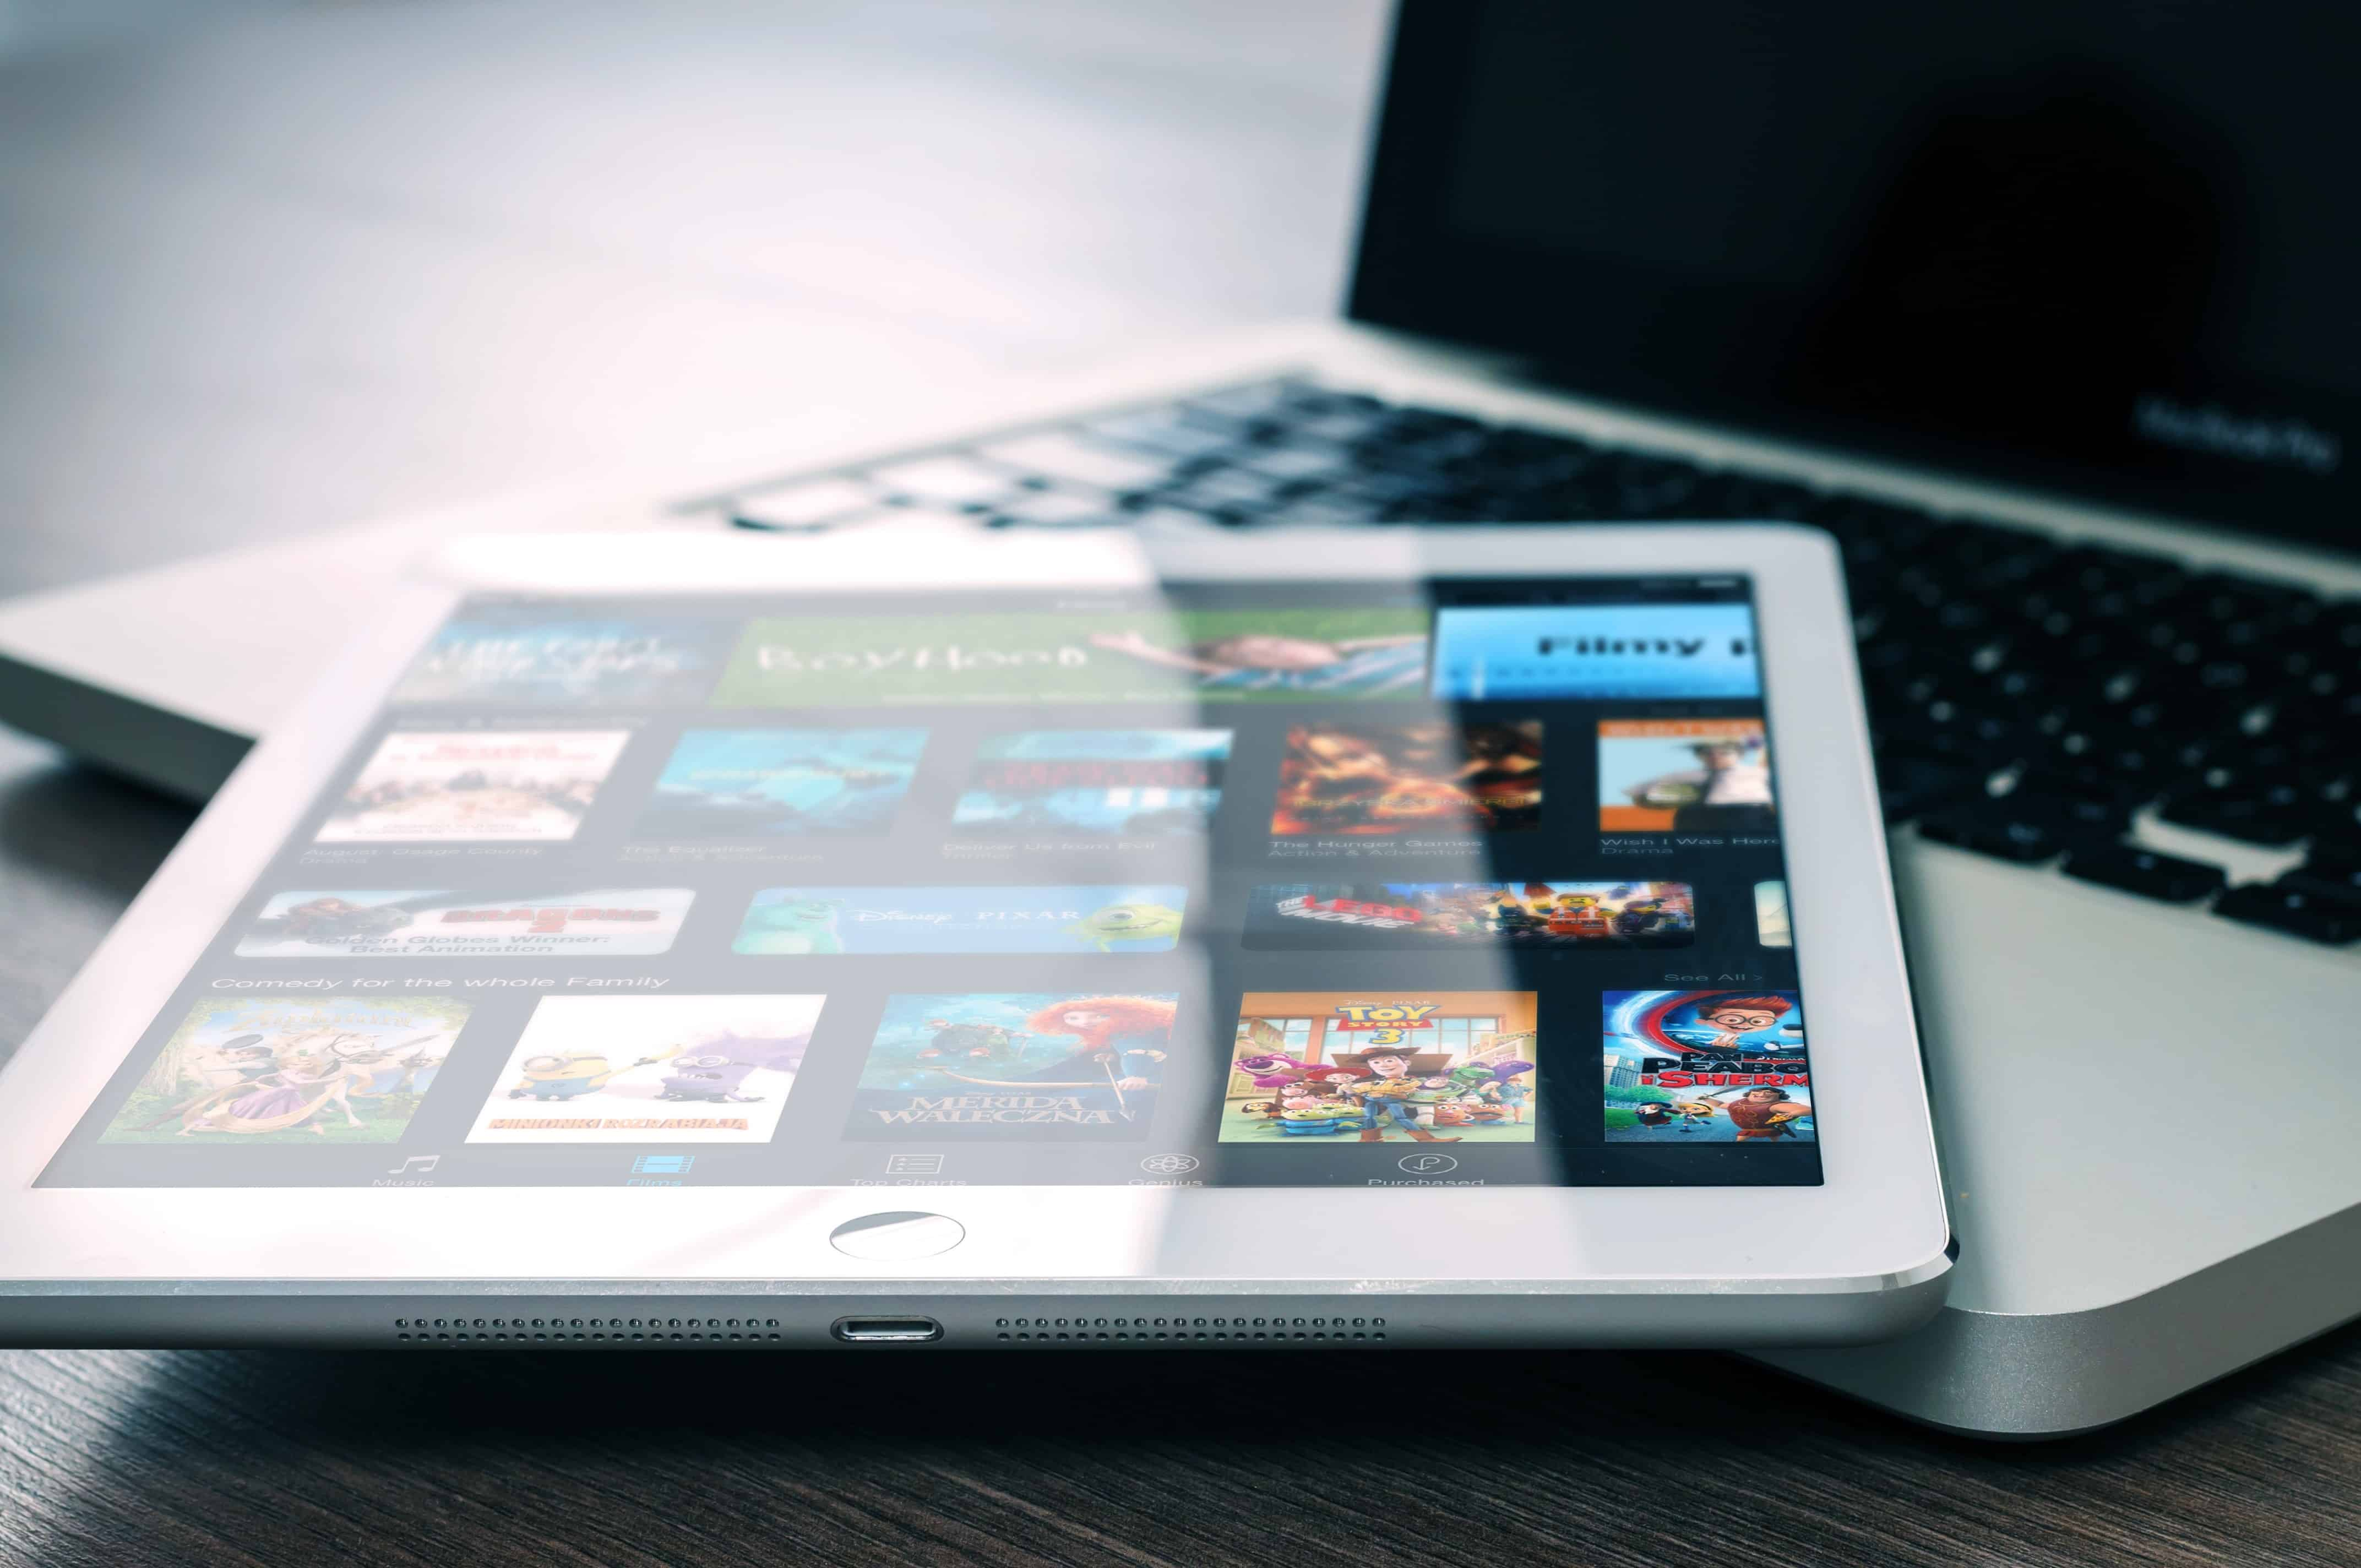 watching television shows on your tablet or mobile device